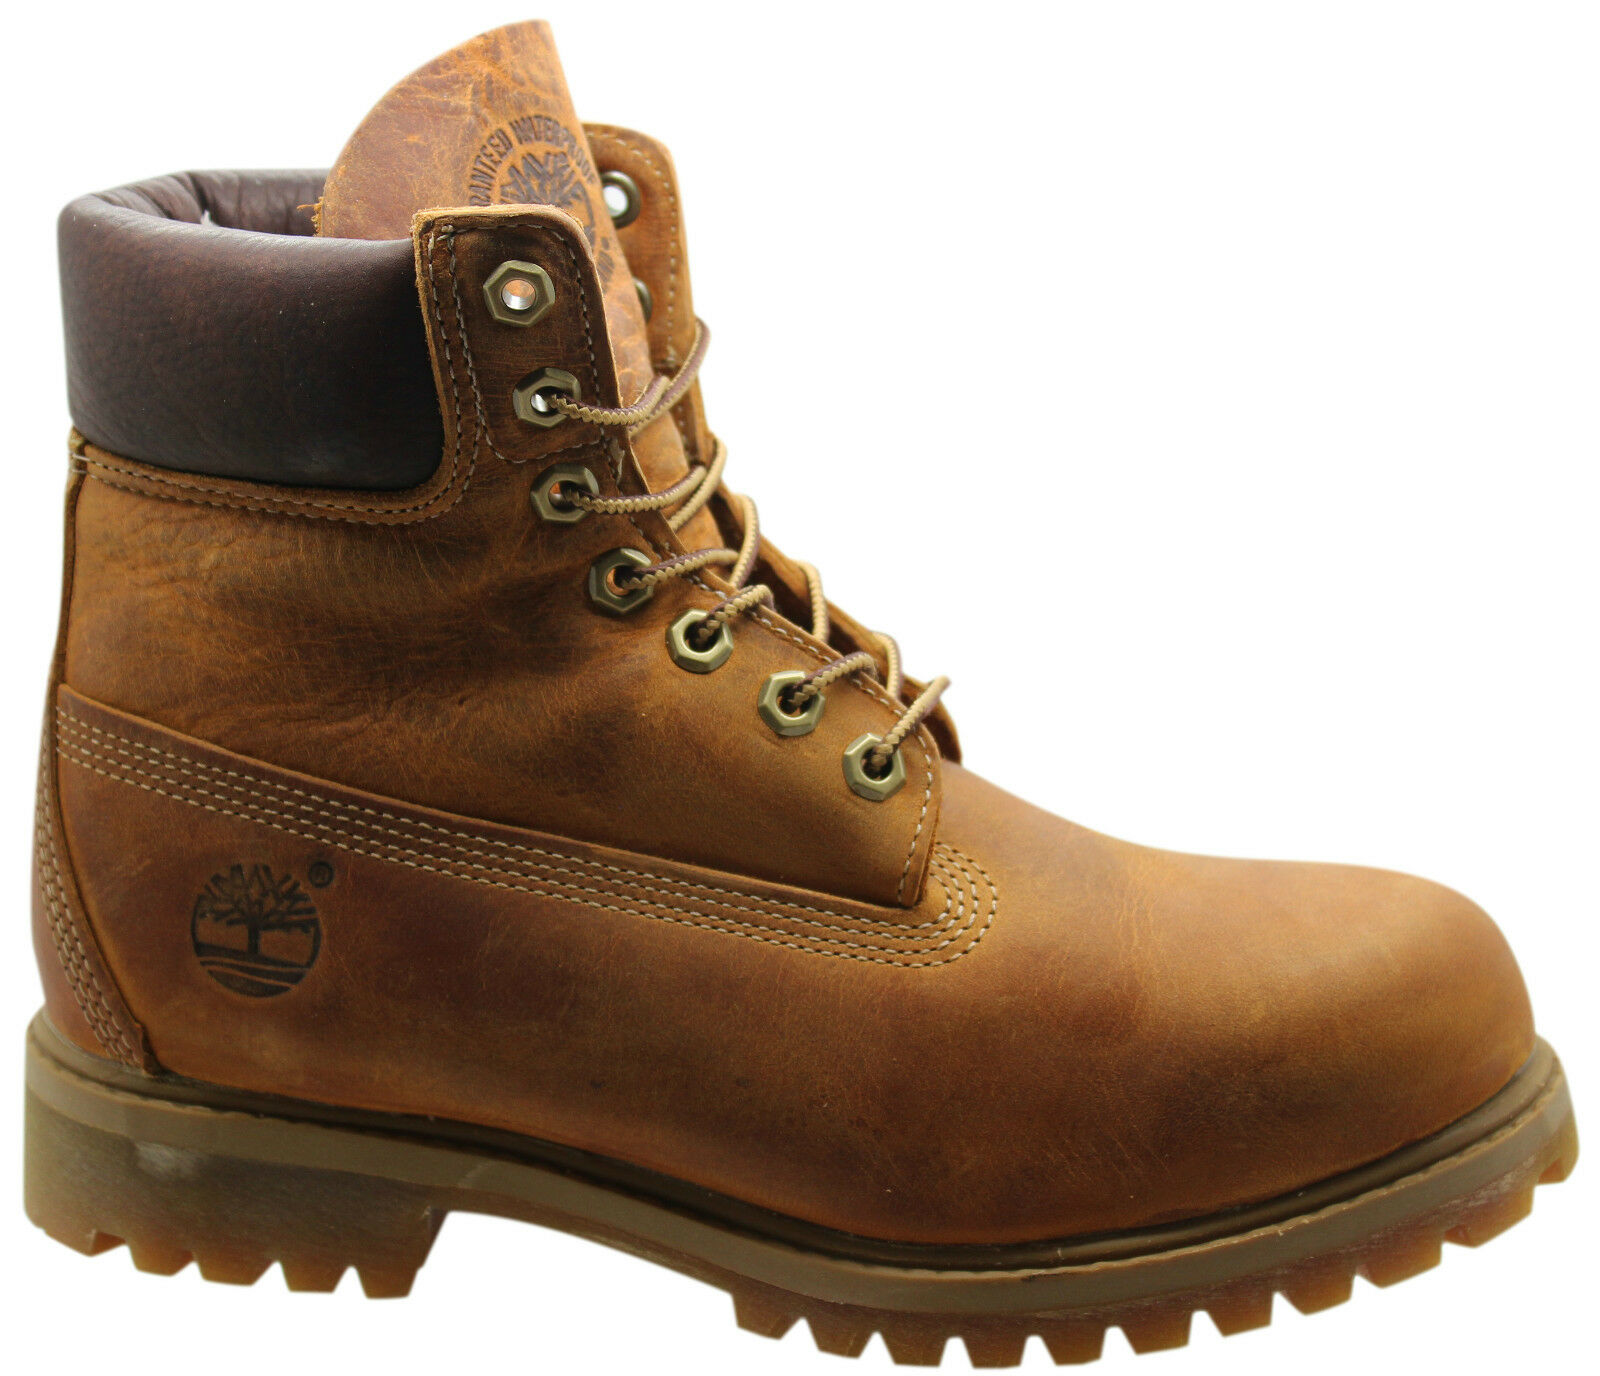 1f68dcfee9 Timberland AF 6 Inch Anniversary Waterproof Leather Mens Lace Up ...